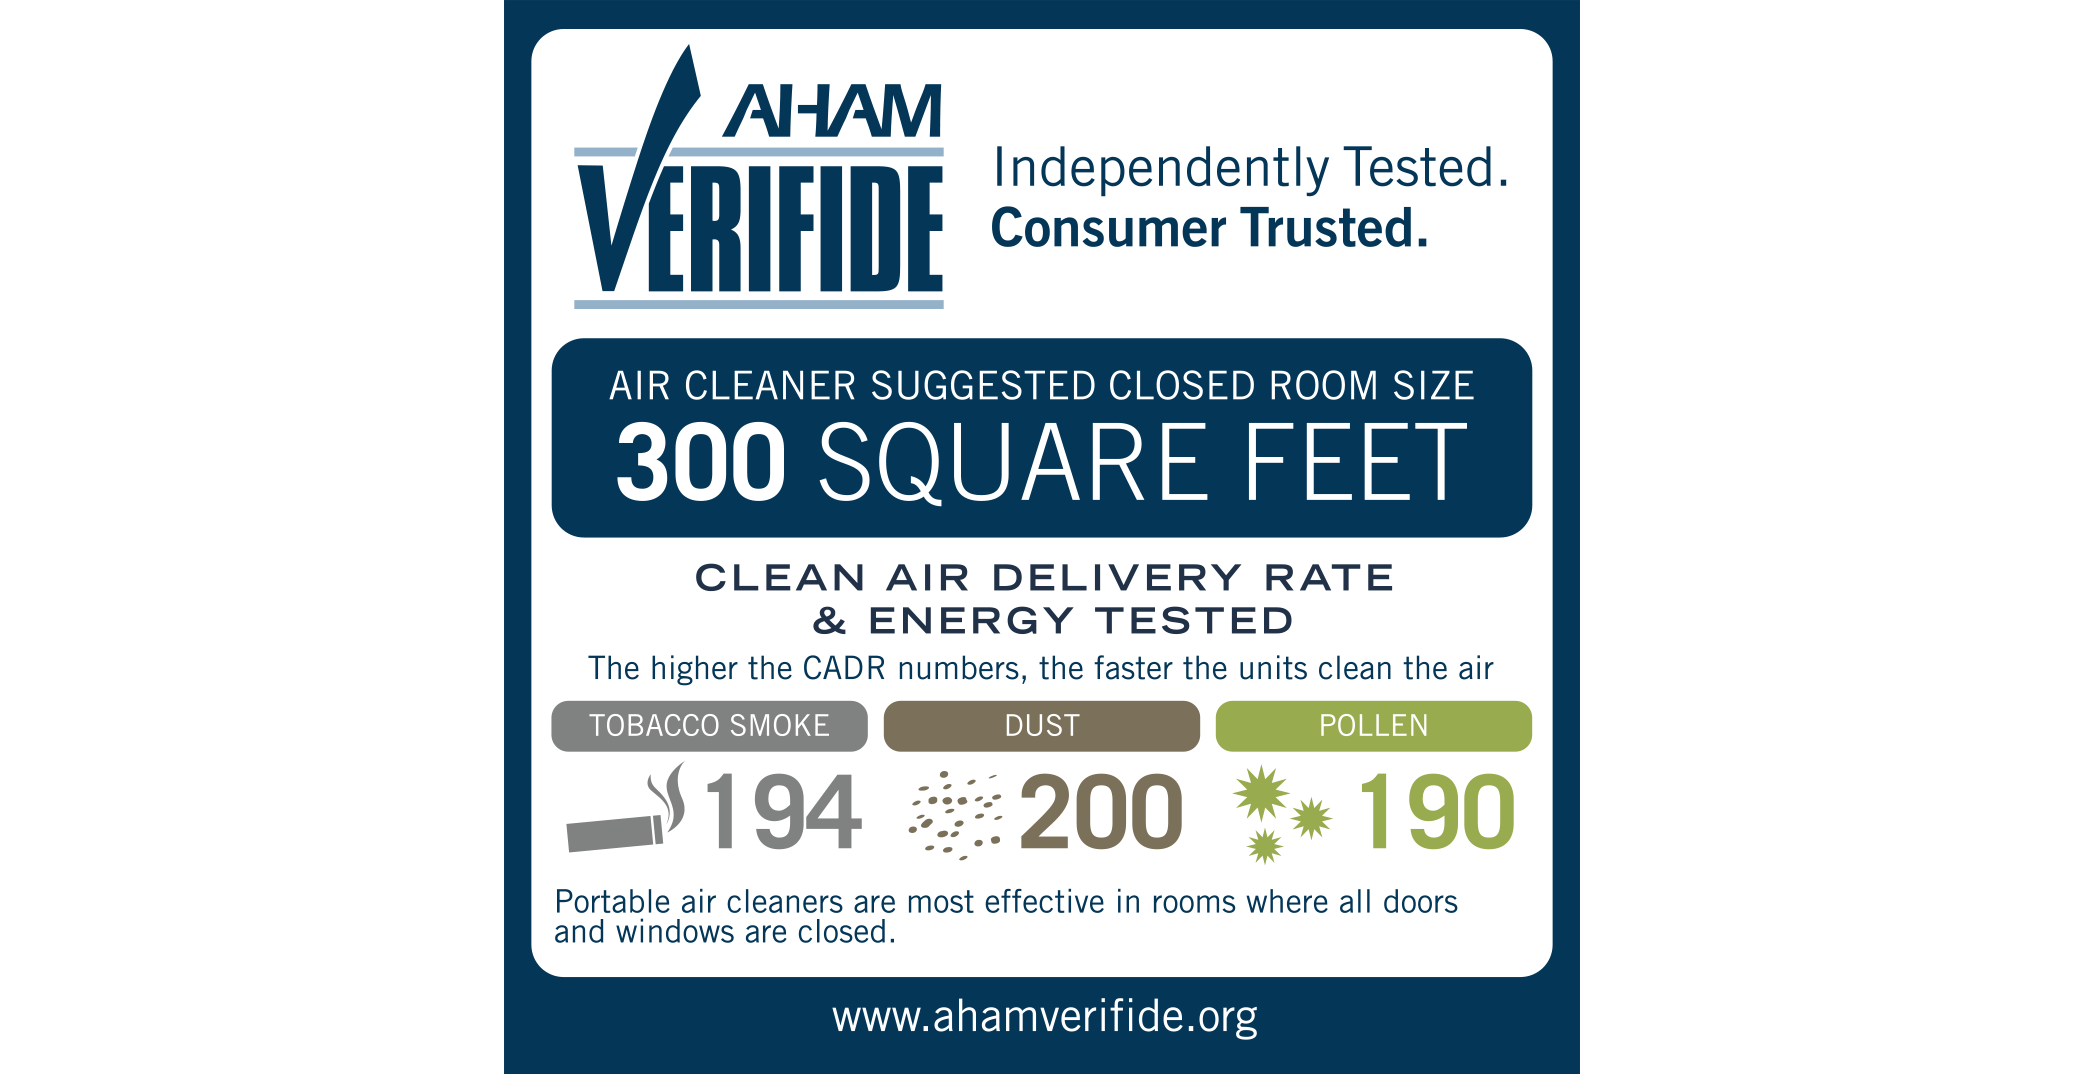 AHAM Verifide. Independently Tested. Consumer Trusted.